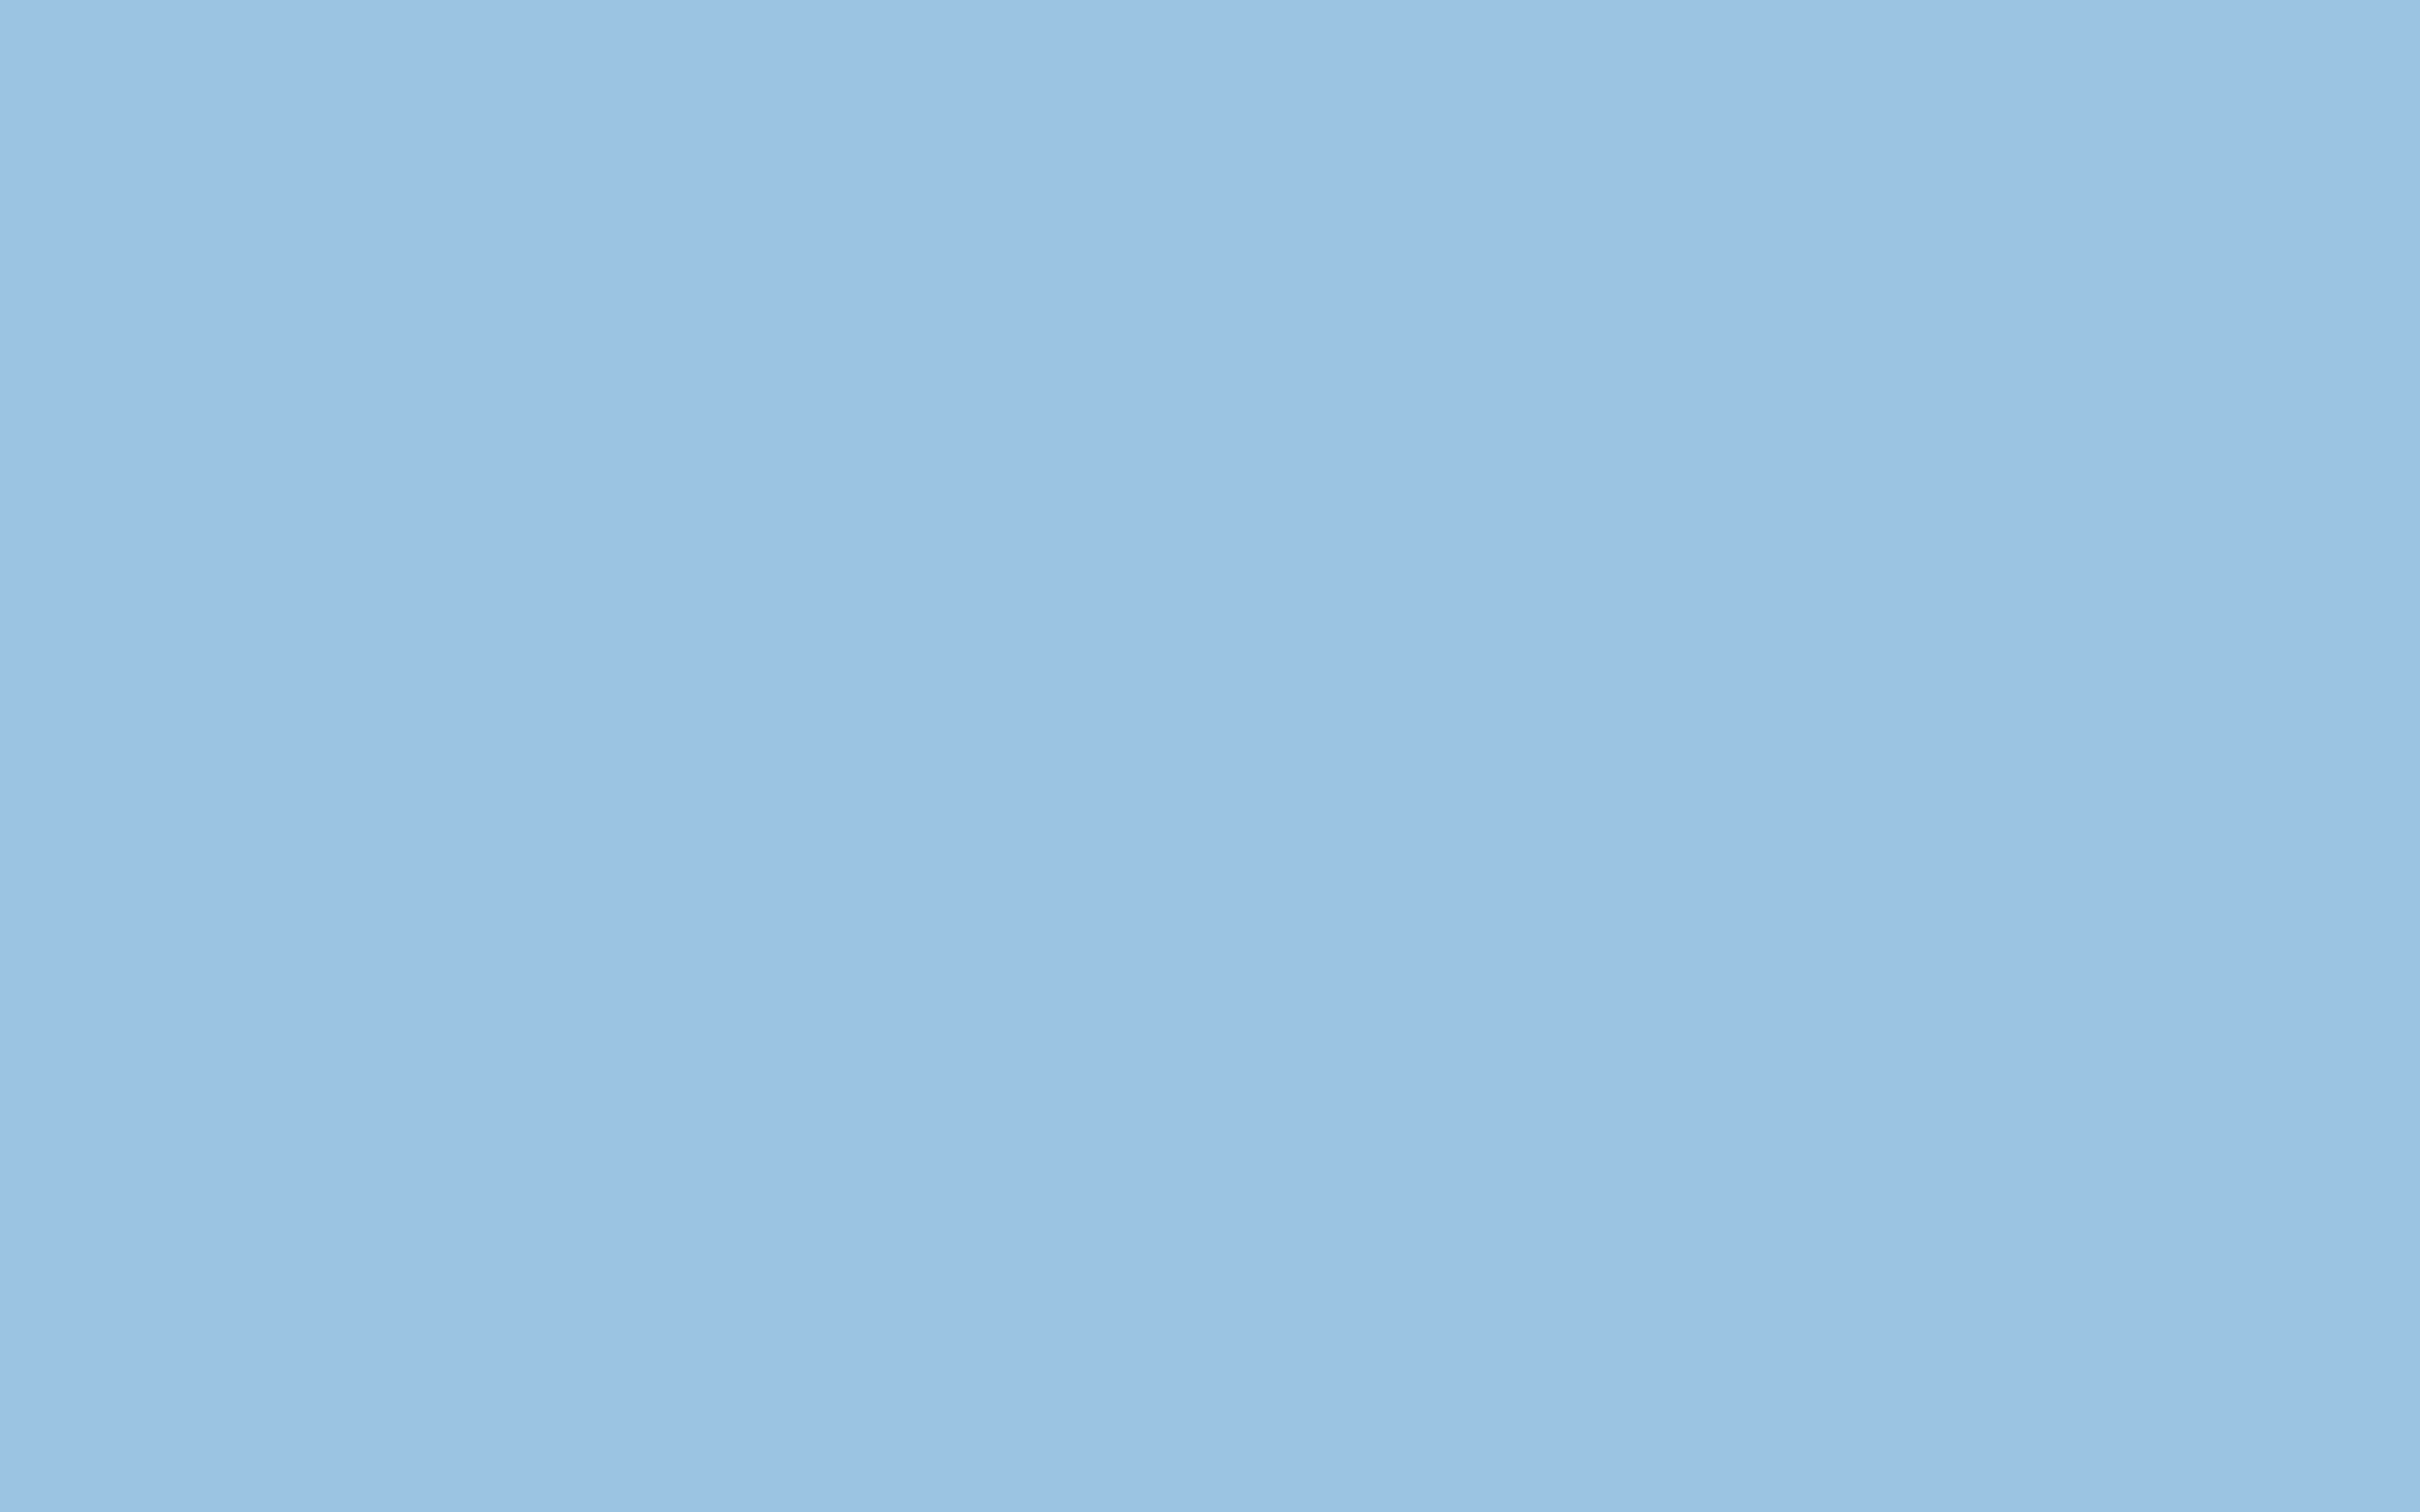 2560x1600 Pale Cerulean Solid Color Background